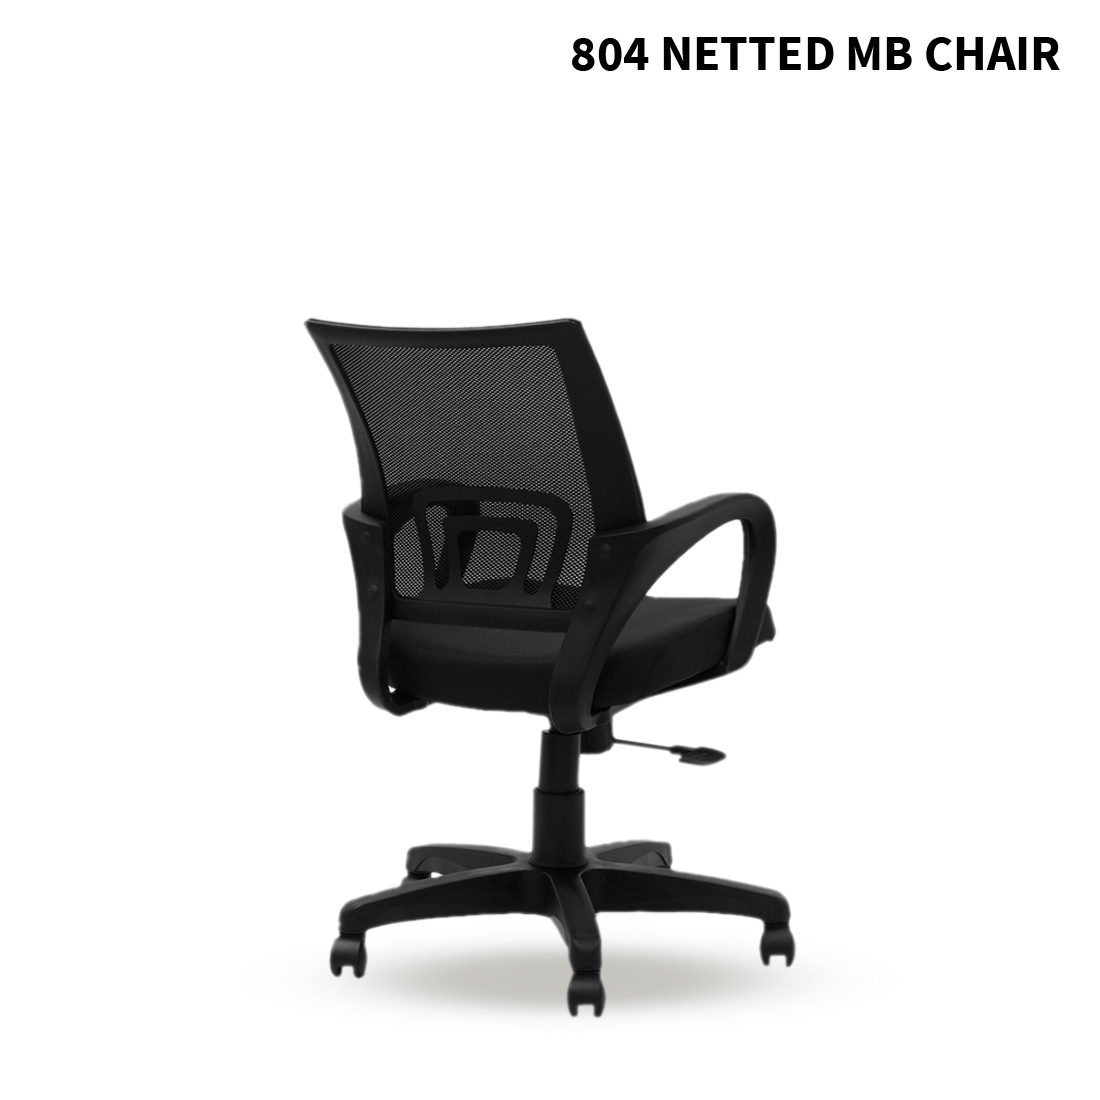 804 NETTED - MB - ANGLE - 005